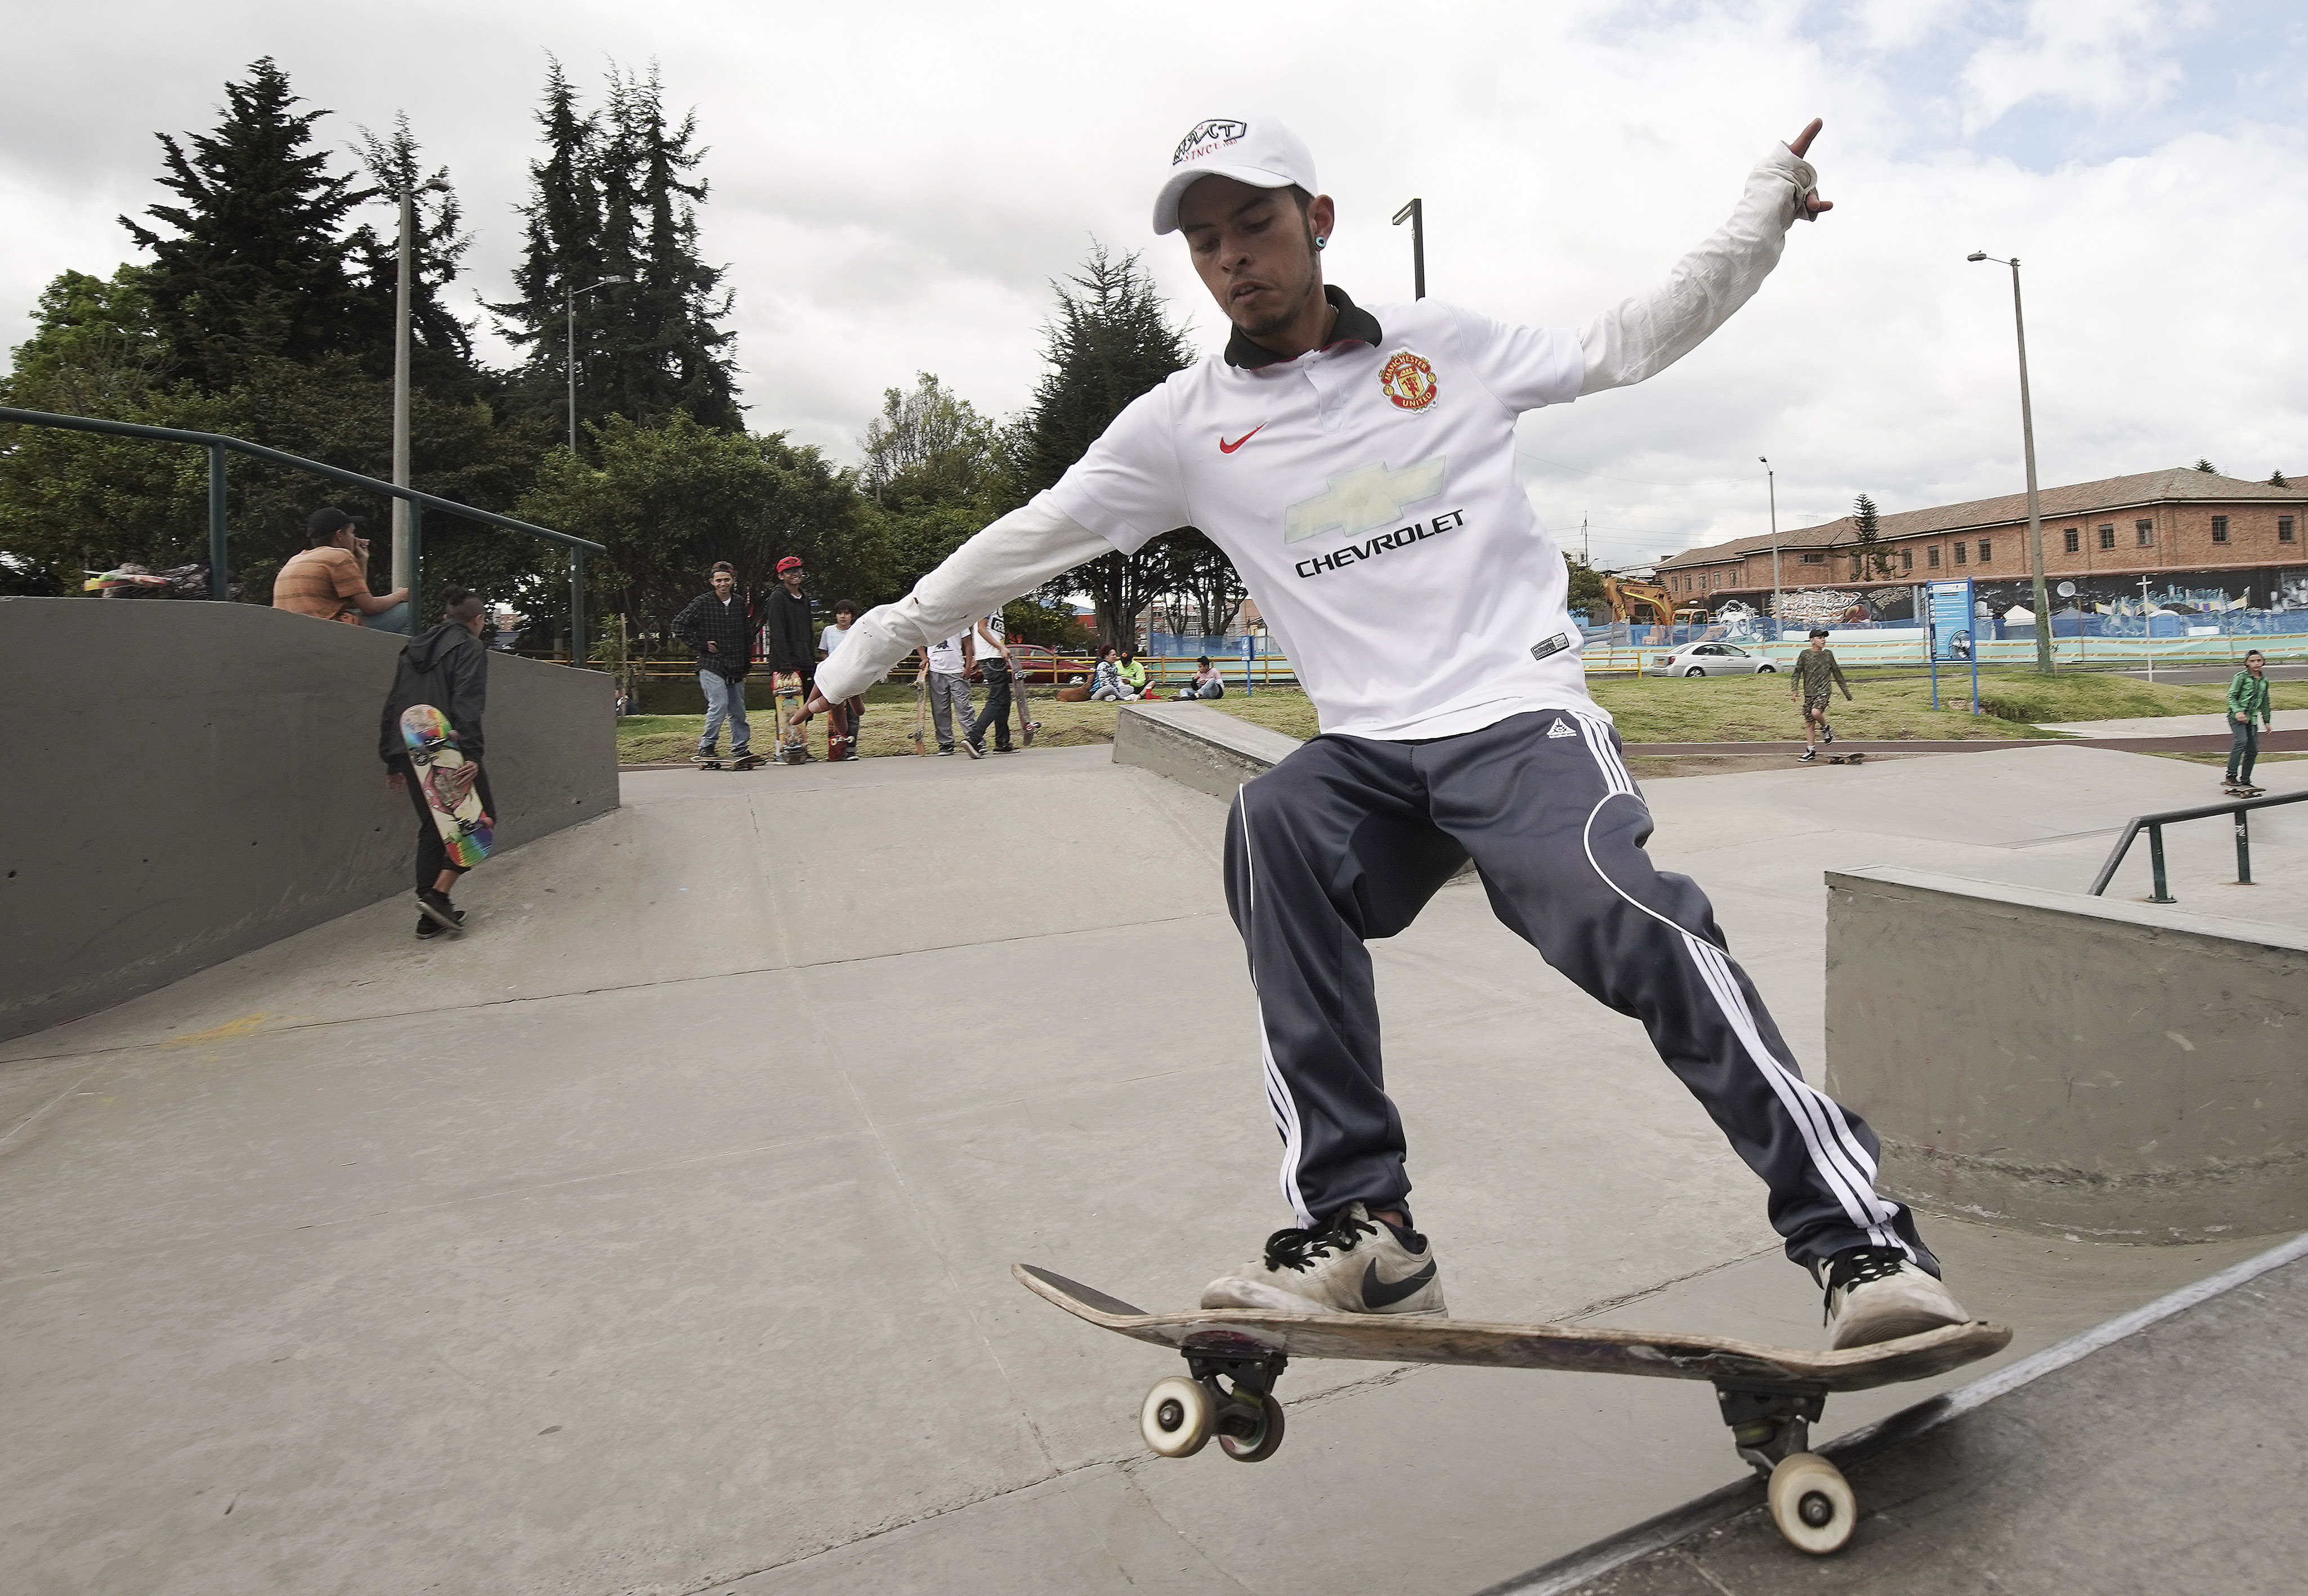 A skater jumps in a park in Bogota, Colombia, on Sunday, Aug. 25, 2019. President Russell M. Nelson of The Church of Jesus Christ of Latter-day Saints spoke in a devotional in the city.